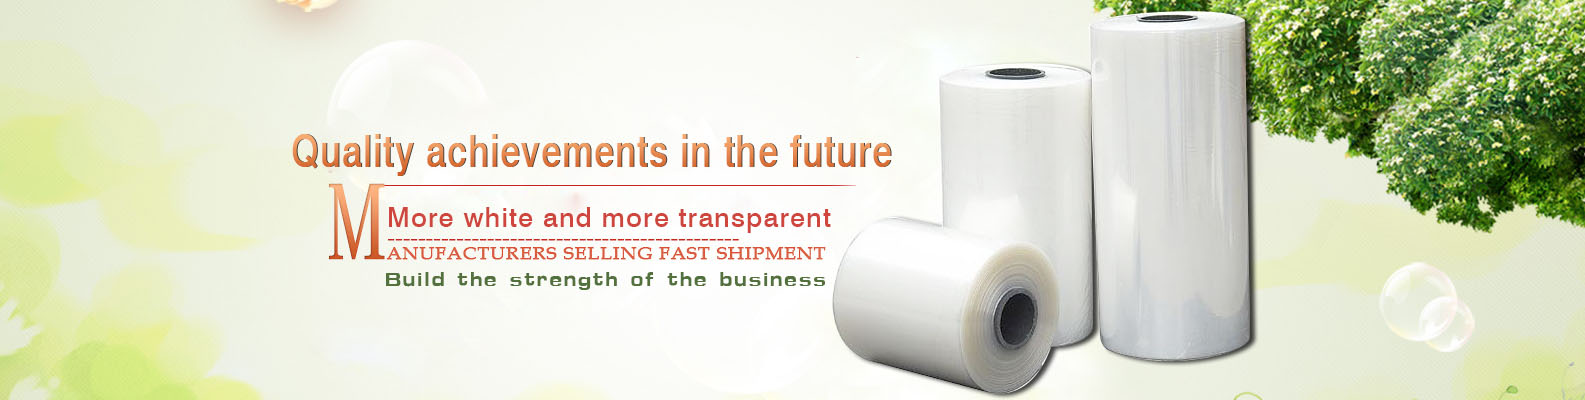 More white and more transparent manufacturers selling fast shipment build the strength of the business